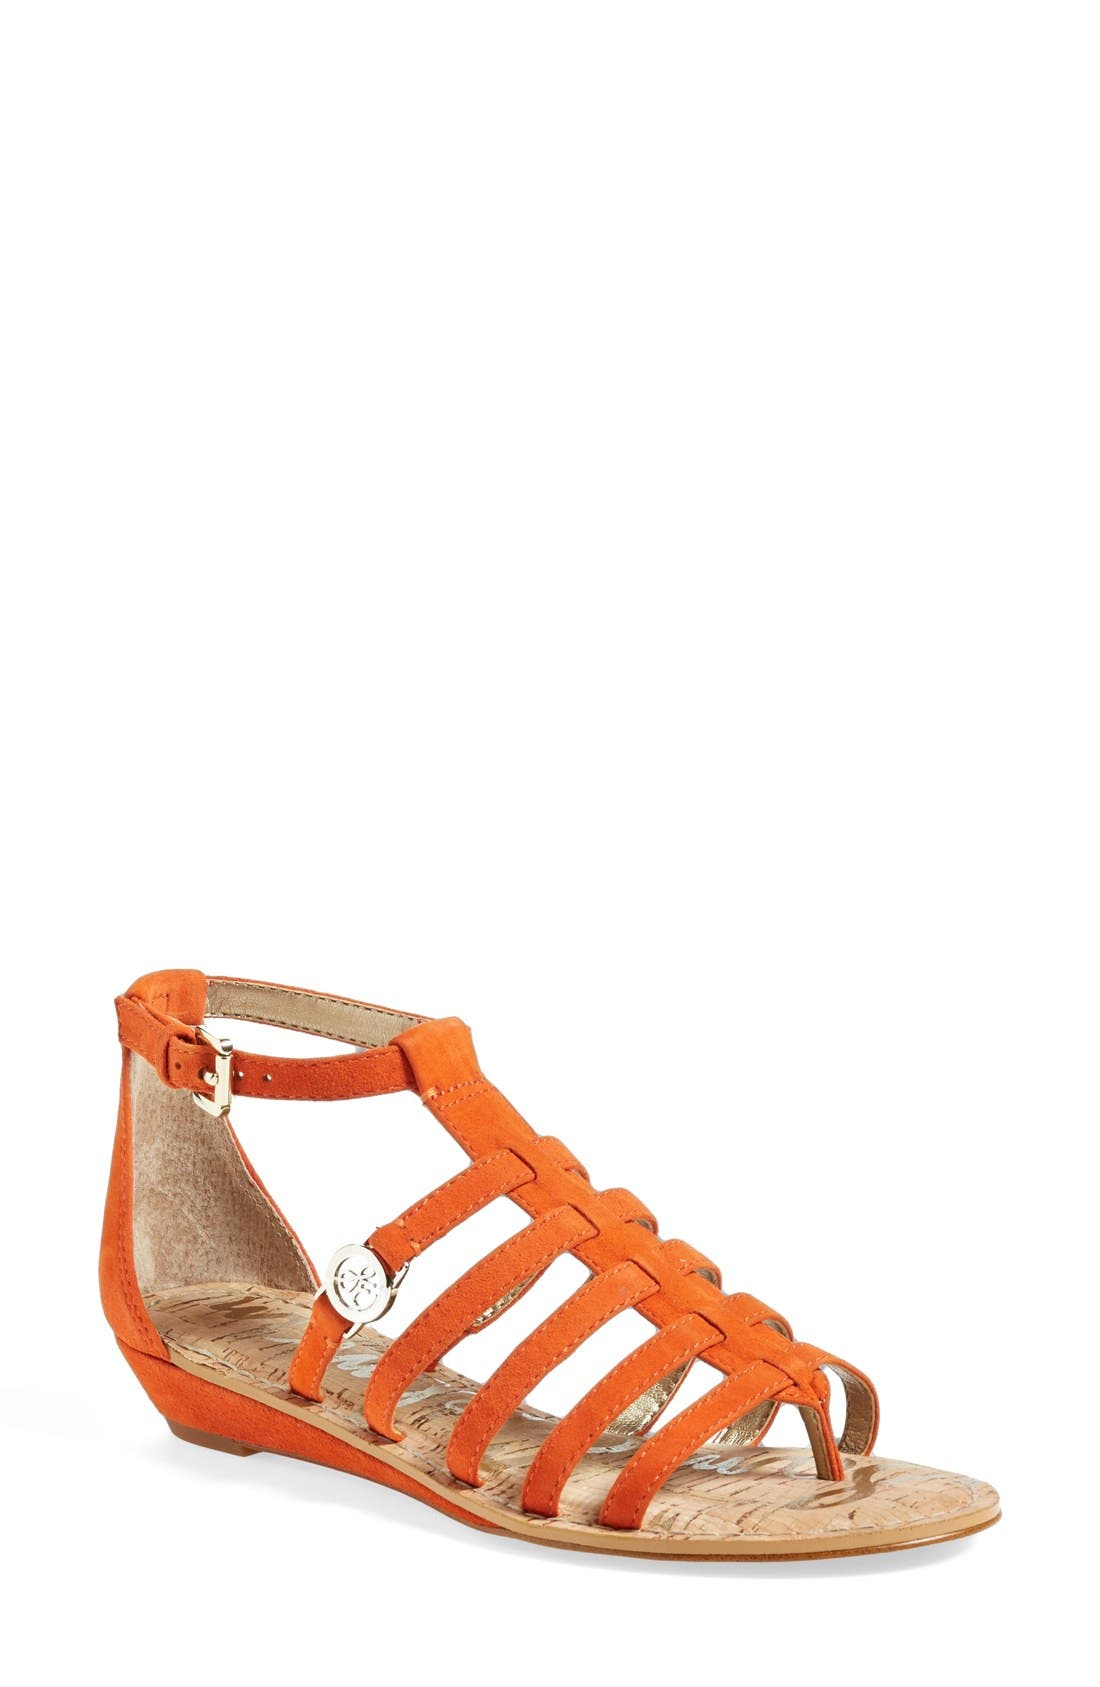 Main Image - Sam Edelman 'Donna' Gladiator Sandal (Women)